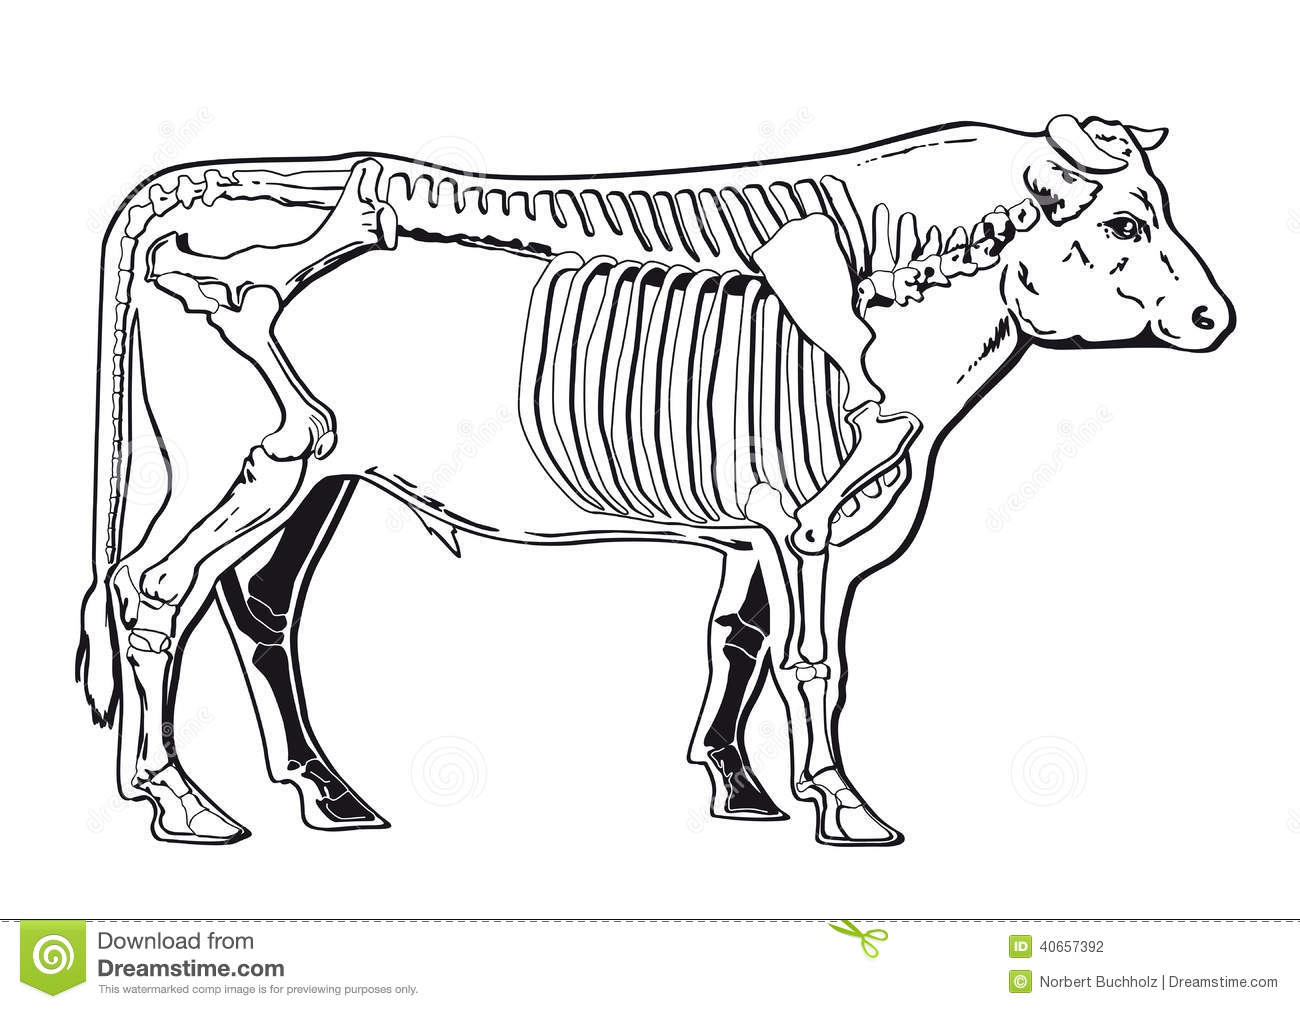 Cattle Skeleton Stock Vector Illustration Of Bovine